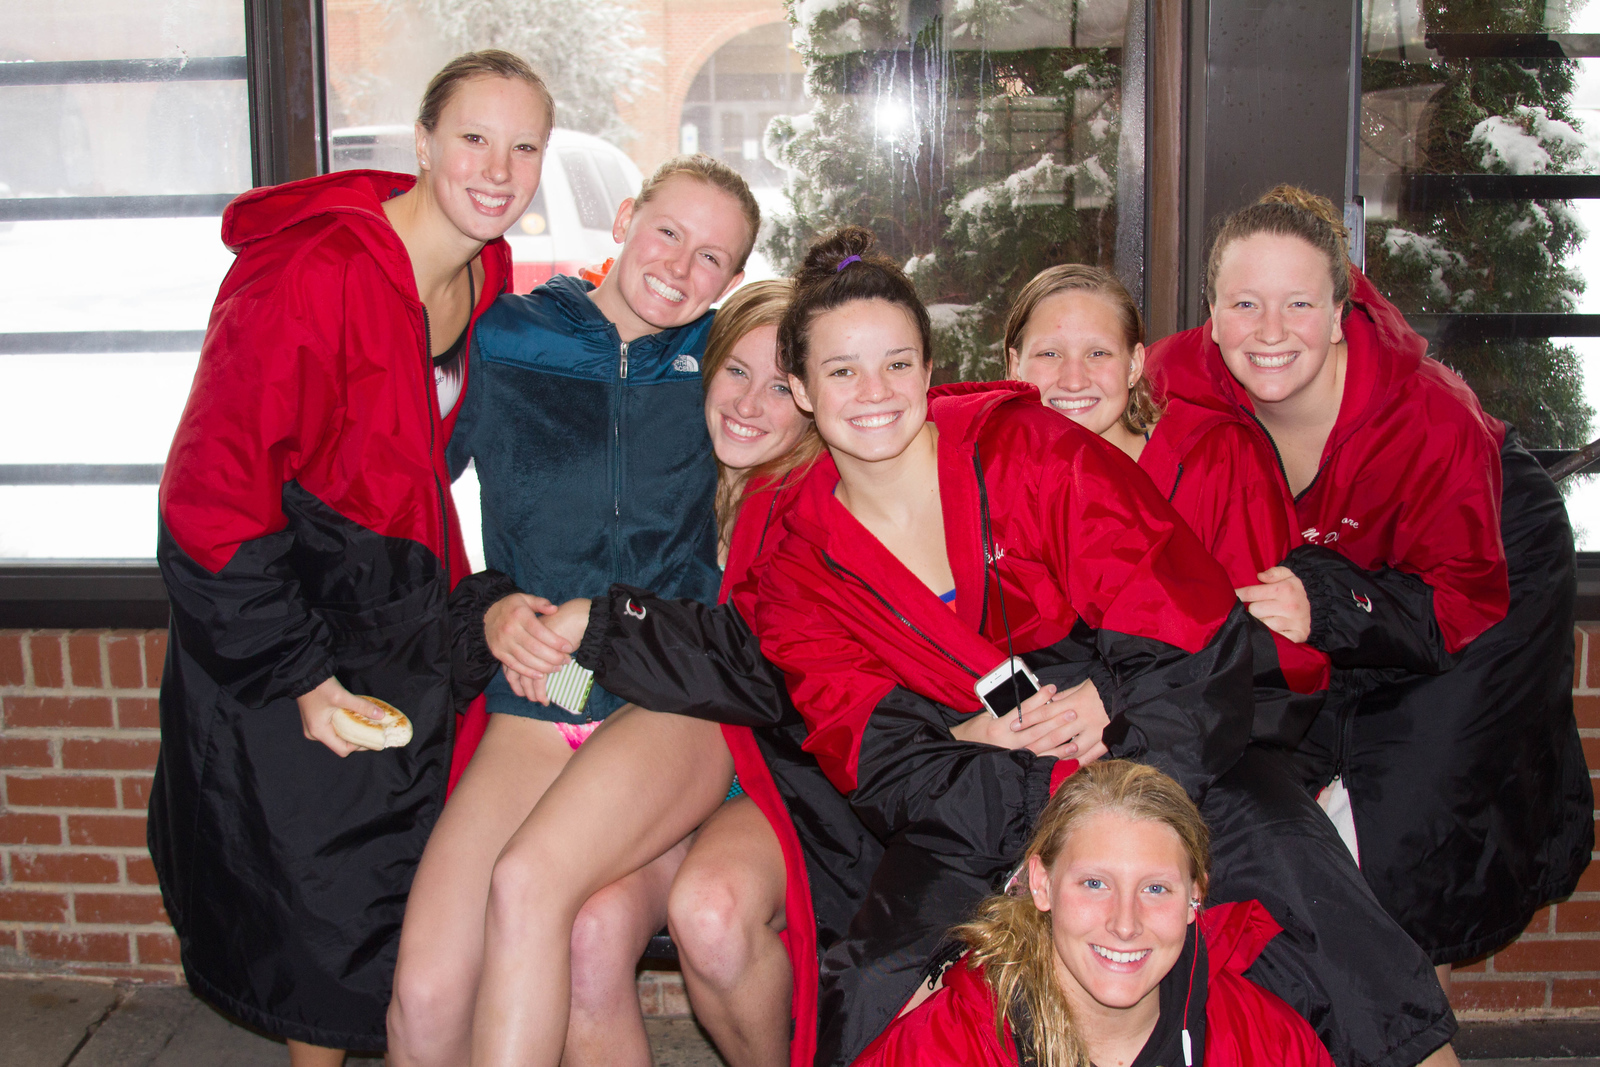 Photo by Adel Kiss Christiana Clayton, Carol Zangla, Hope Saunders, Lauren Oglesby, London Schumacher, Madi Dinsmore and Morgan VanderScaaf. Resting after workout and before team relays. The swim team love their parkas for staying warm, even when wet.